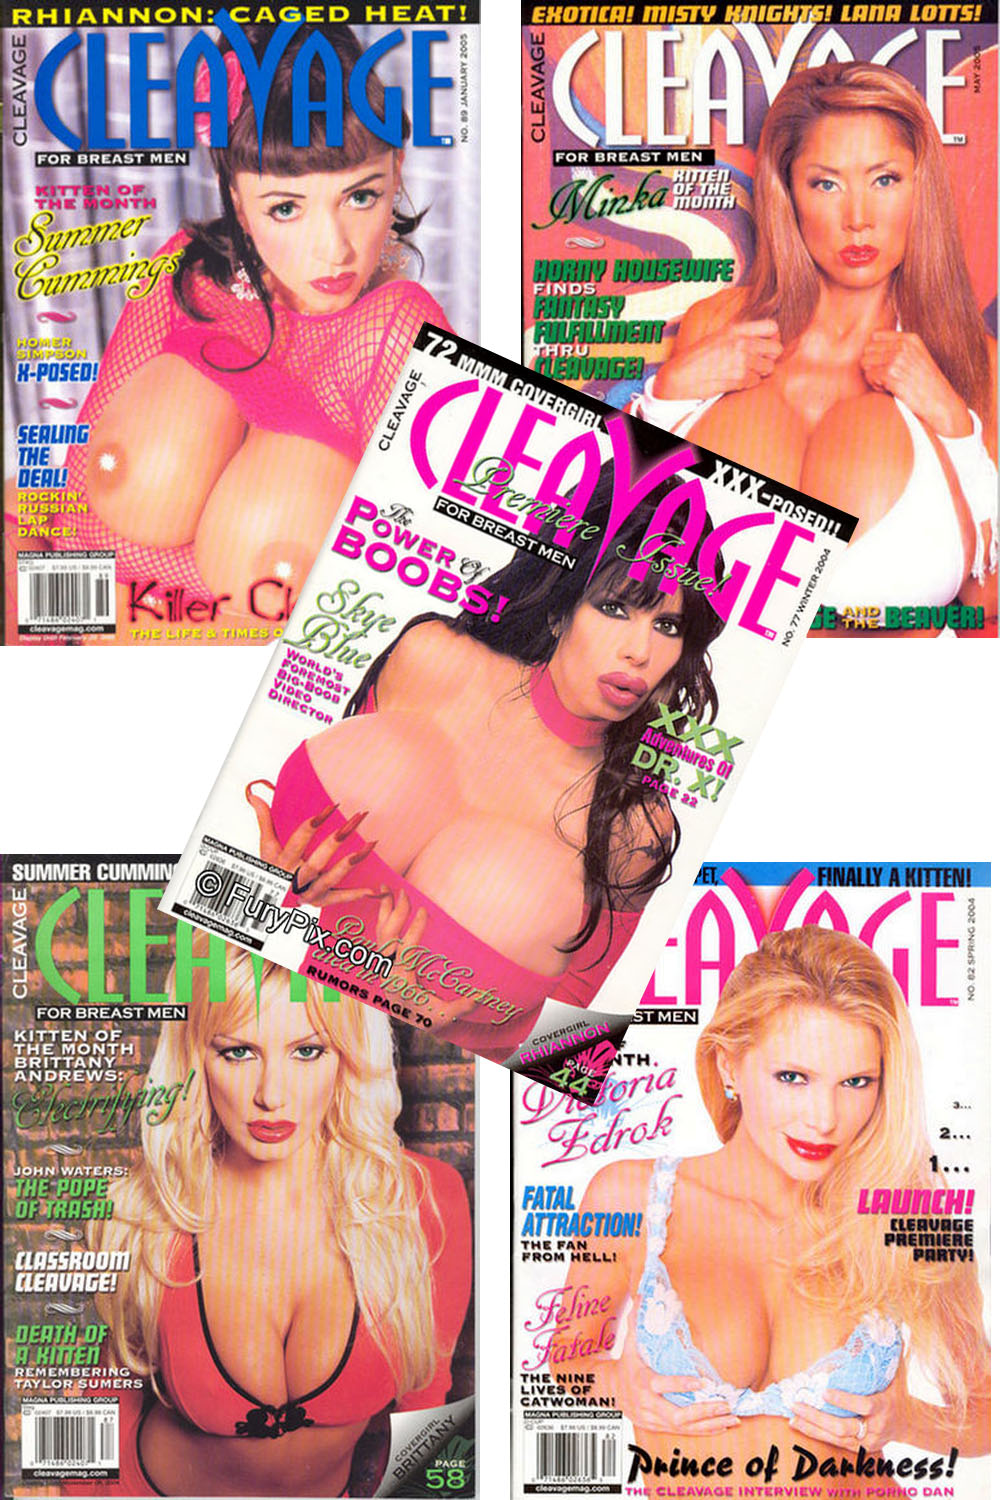 Cleavage - The Entire 5 Issue Run